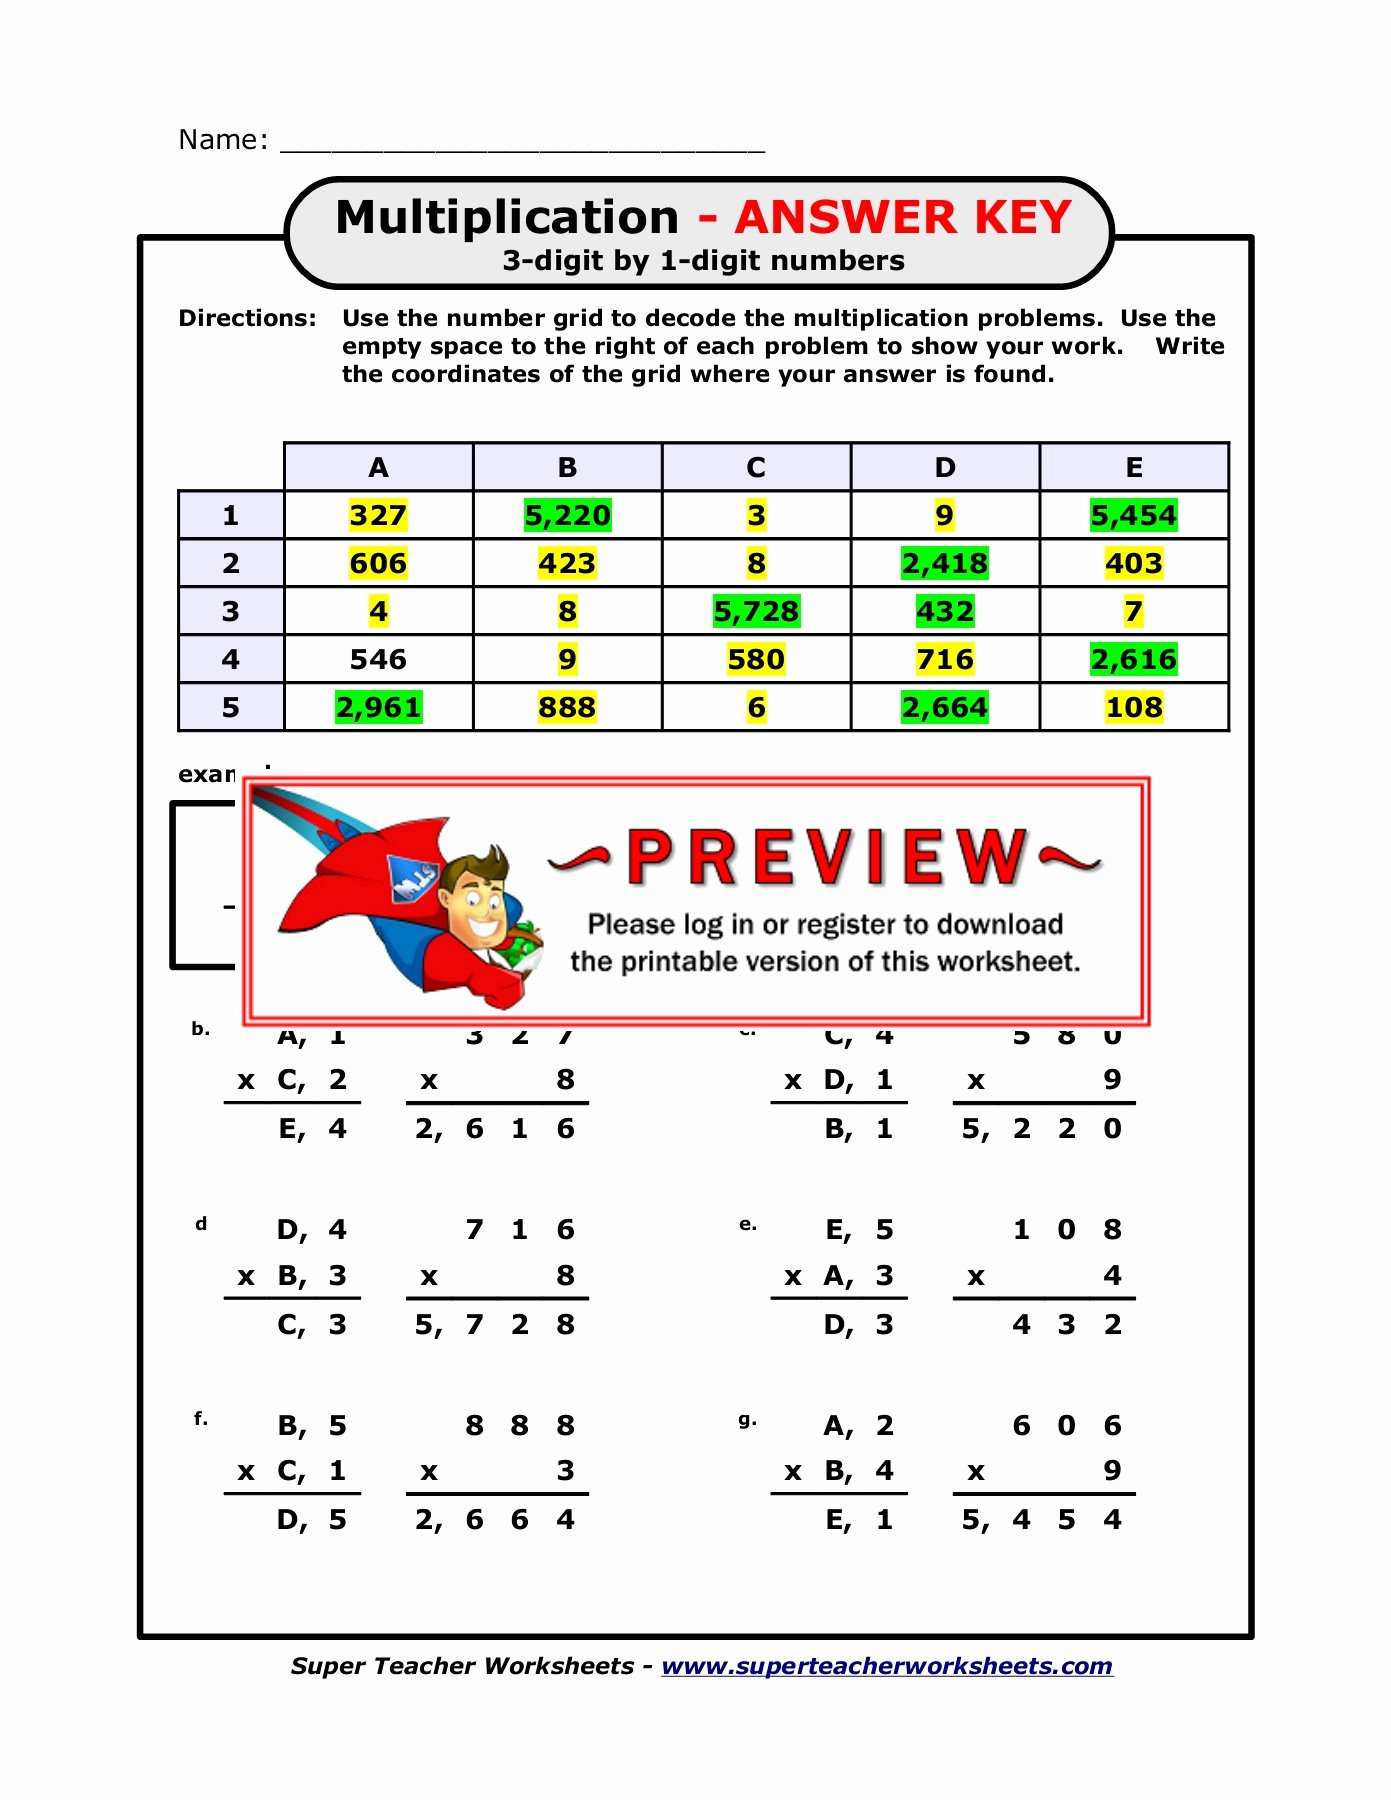 Multiplication Worksheets Super Teacher New Multiplication Super Teacher Worksheets Freemath Printables